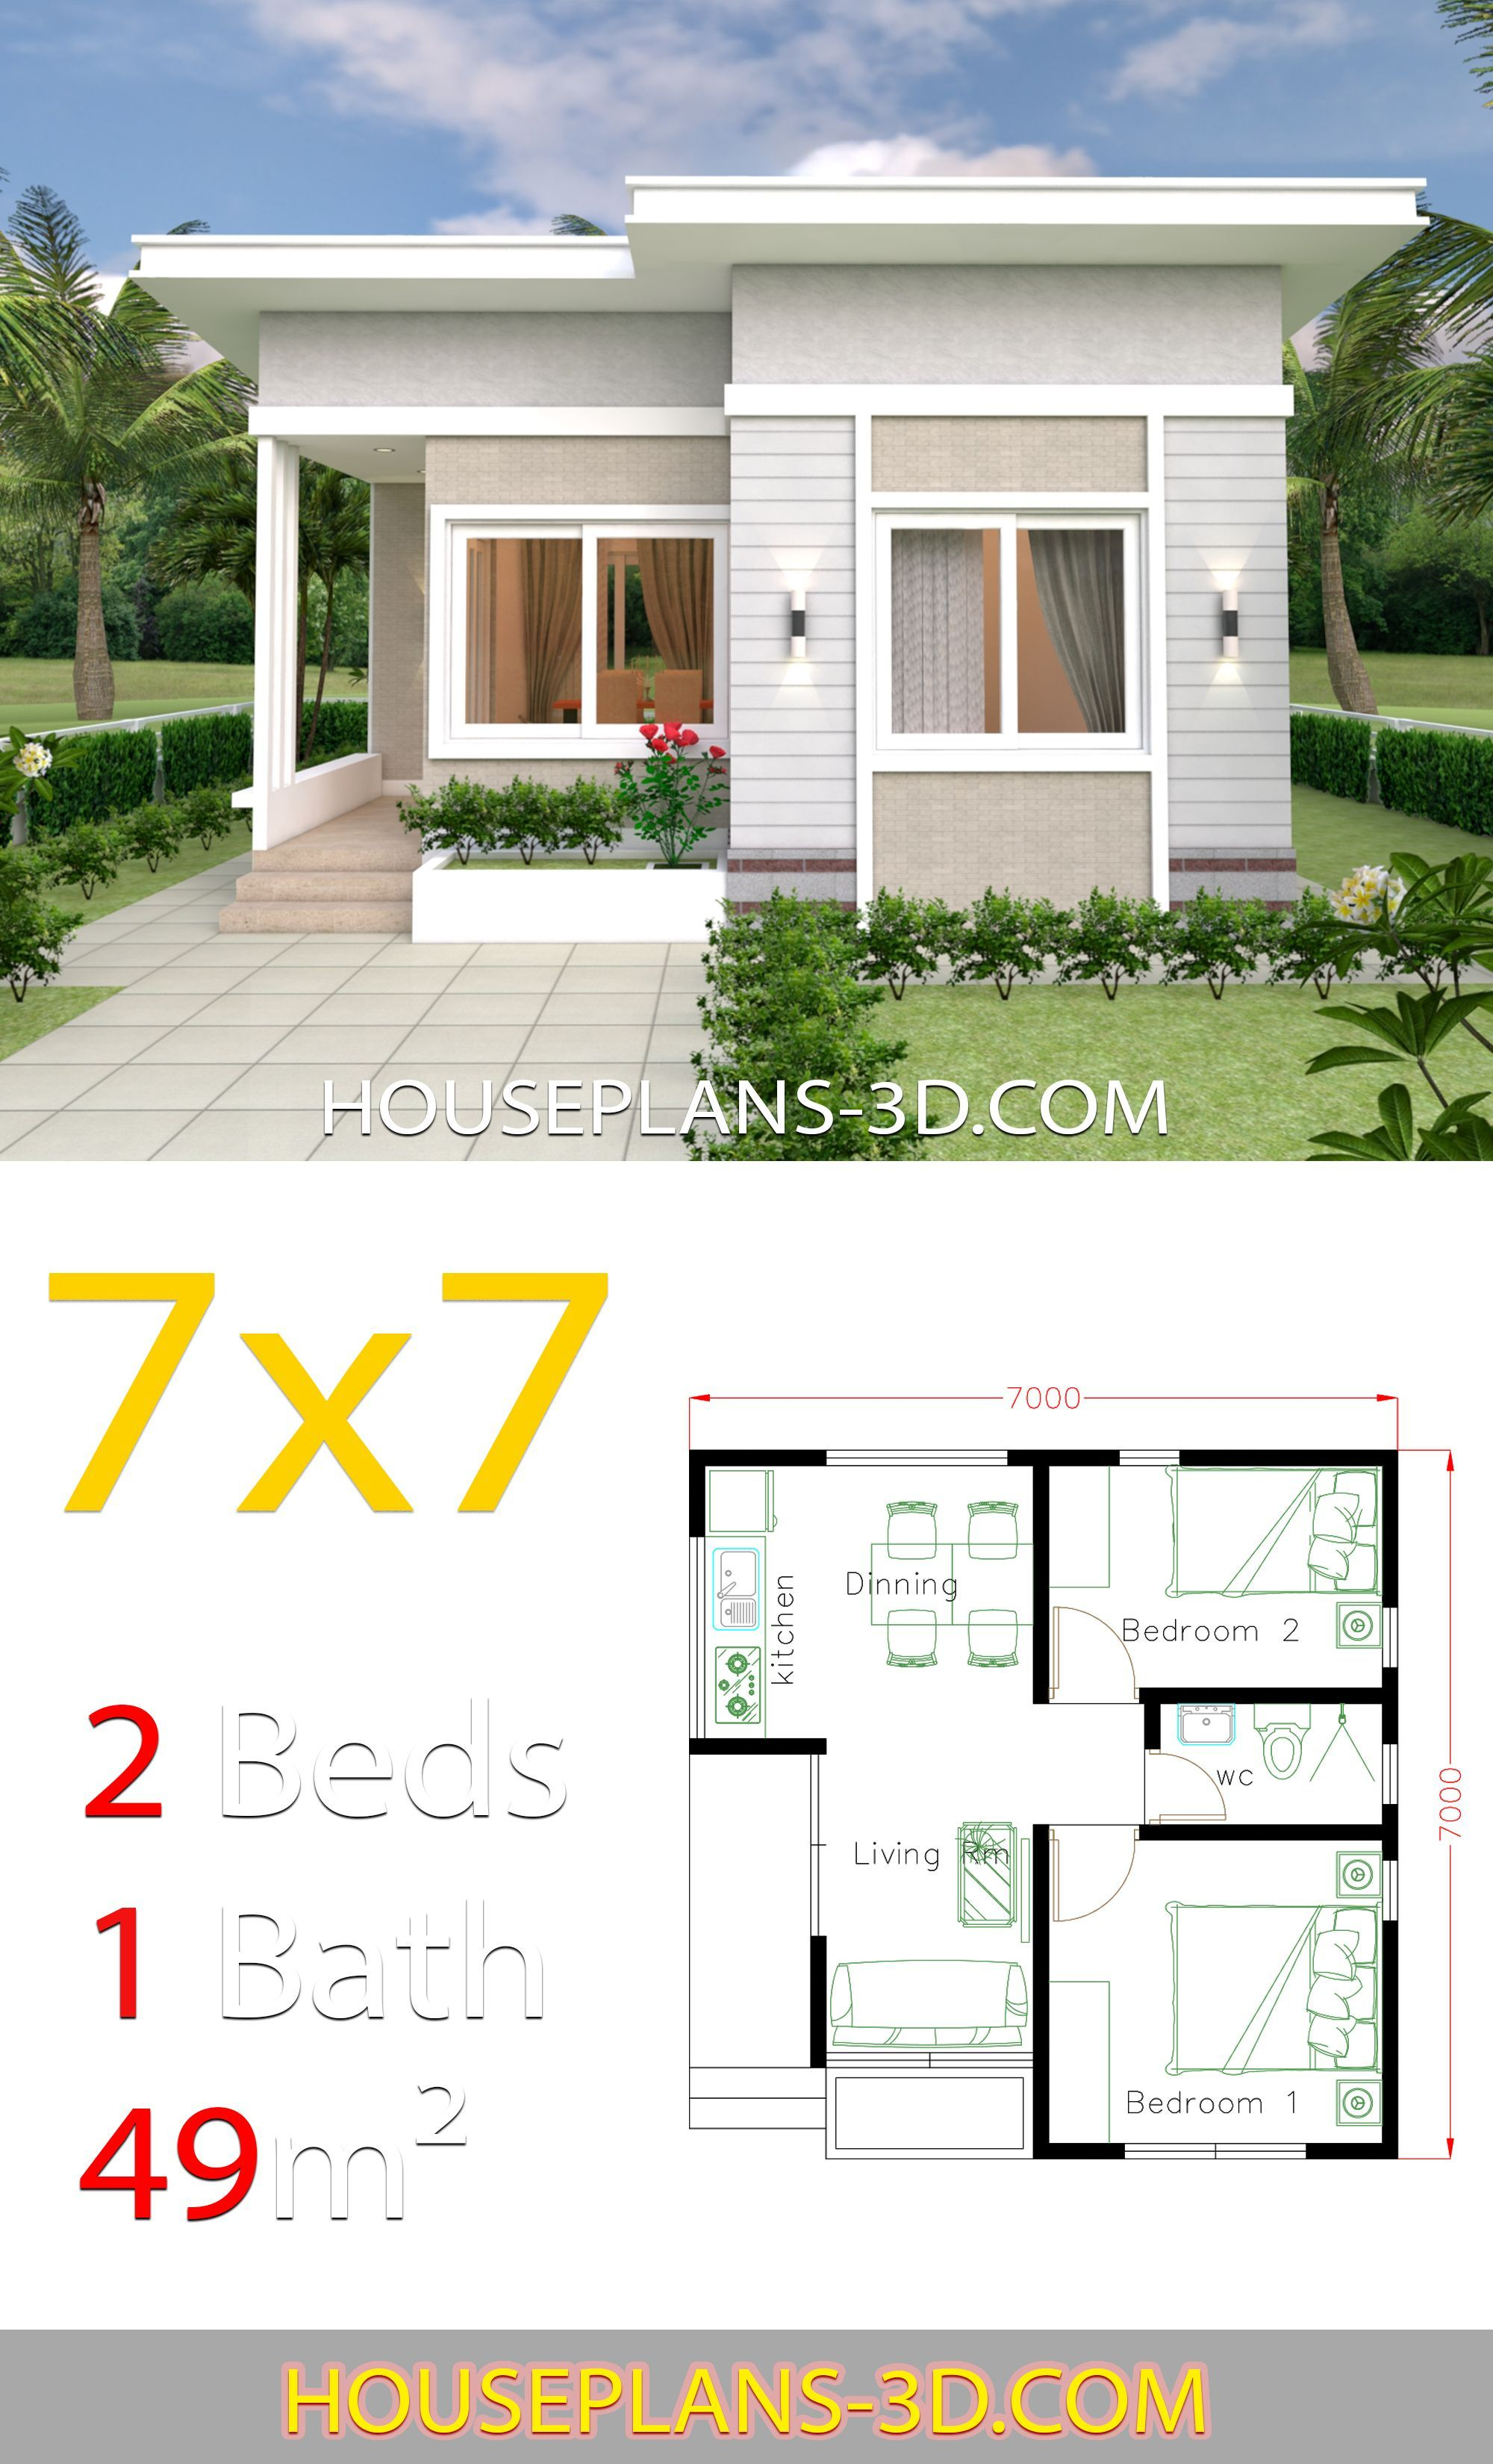 Small House Design 7x7 With 2 Bedrooms House Plans 3d In 2020 Small House Design Plans Small House Design Simple House Design